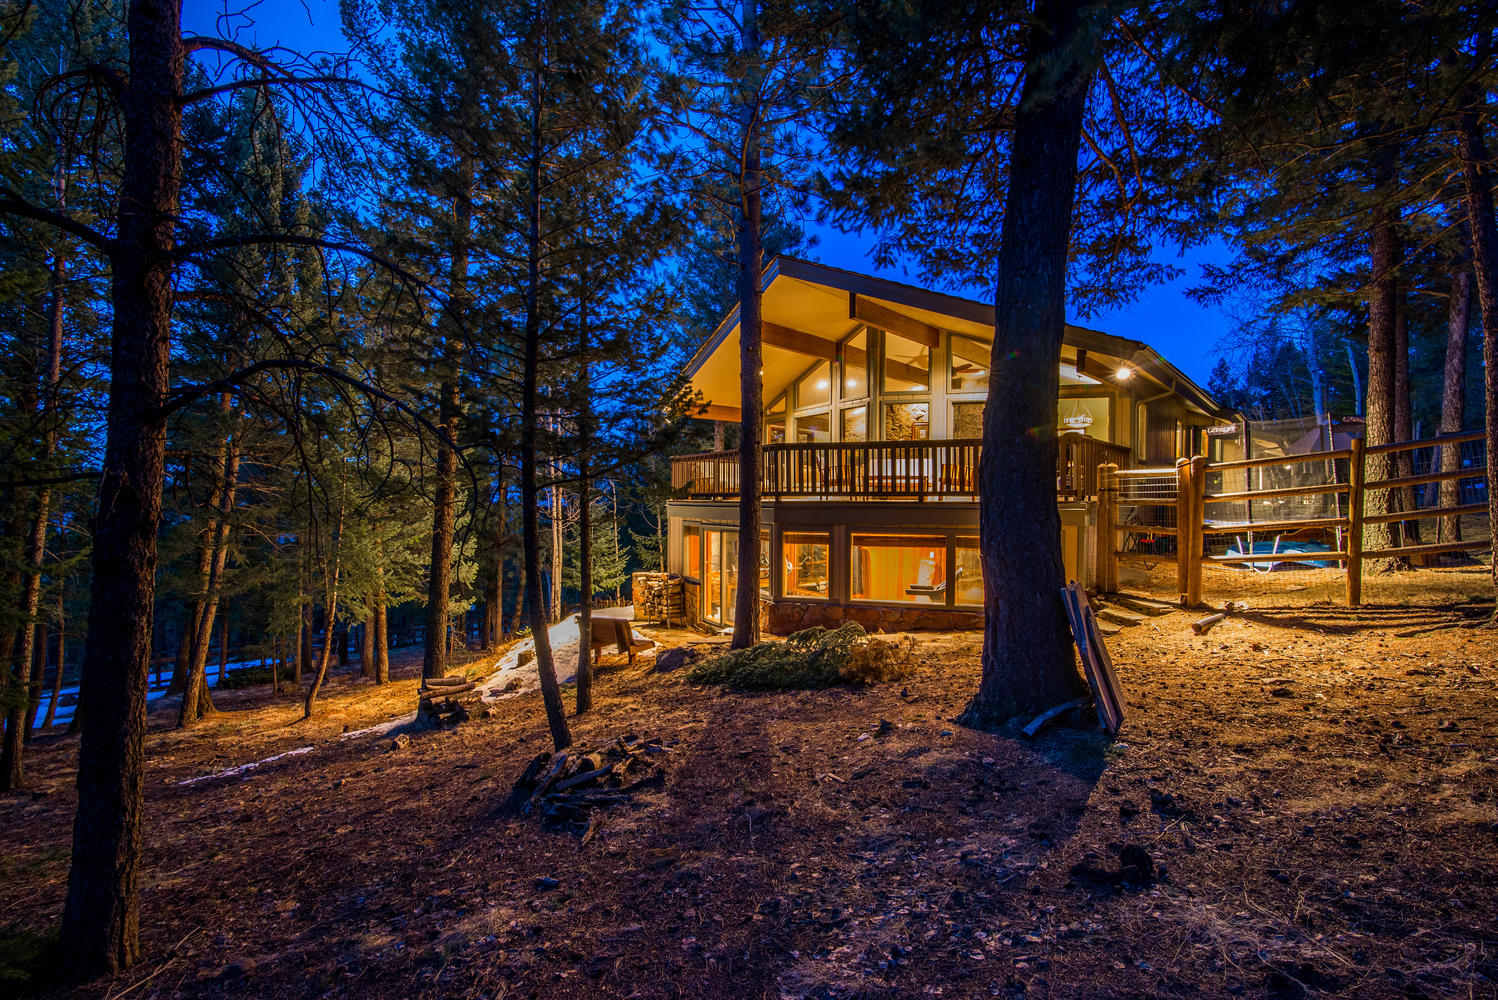 Single Family Home for Sale at Stately Home with Park-Like Setting 33550 Woodland Drive Evergreen, Colorado, 80439 United States